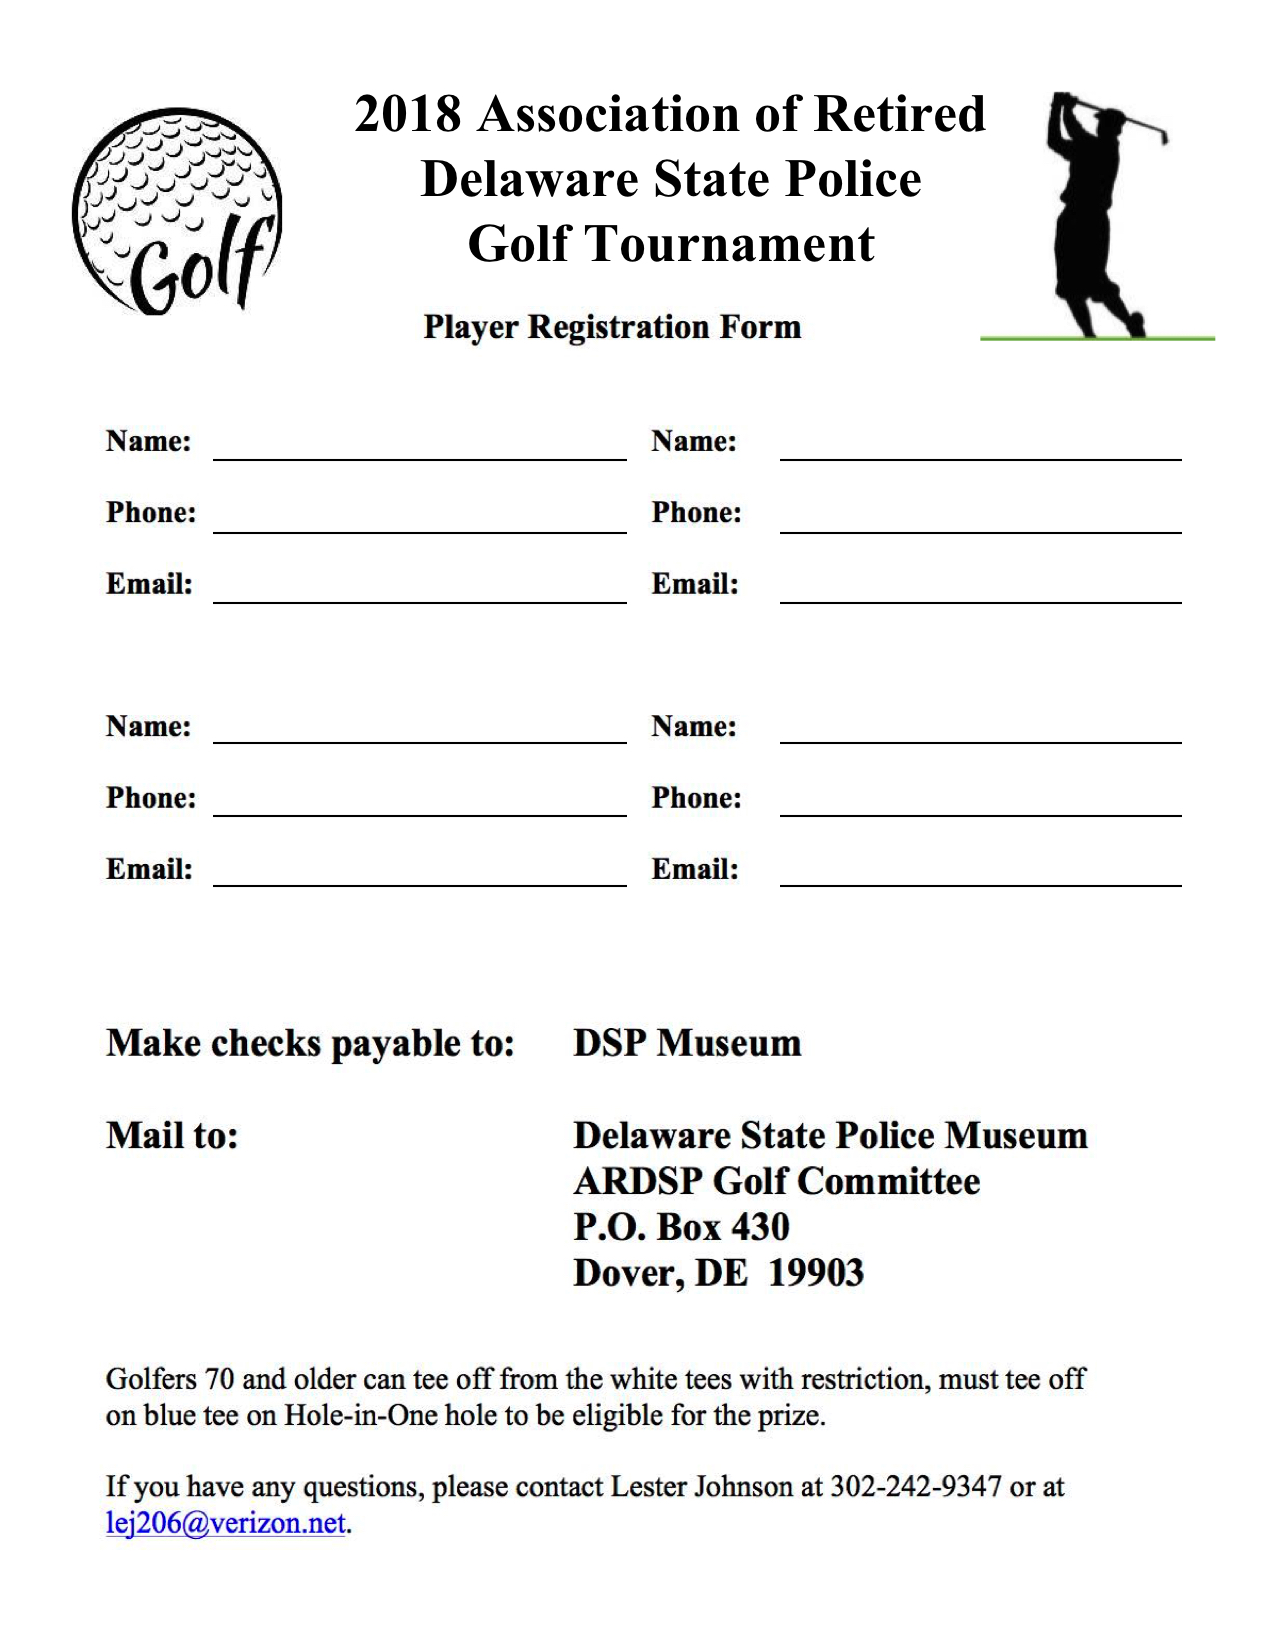 Delaware State Police Golf Tournament Player Registration Form